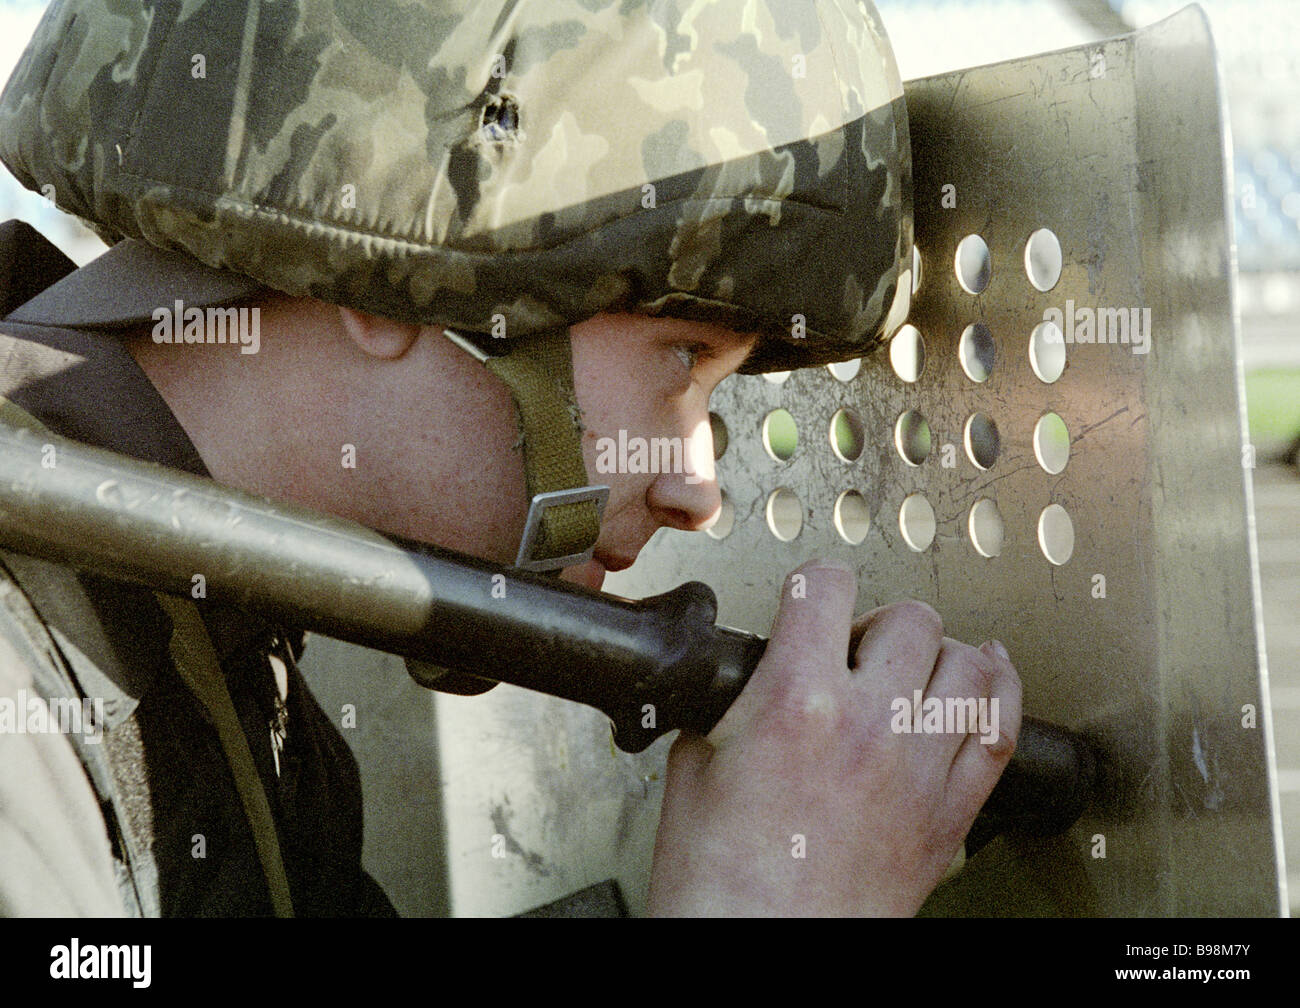 Ministry of Interior Force serviceman during the tactical special military exercise - Stock Image